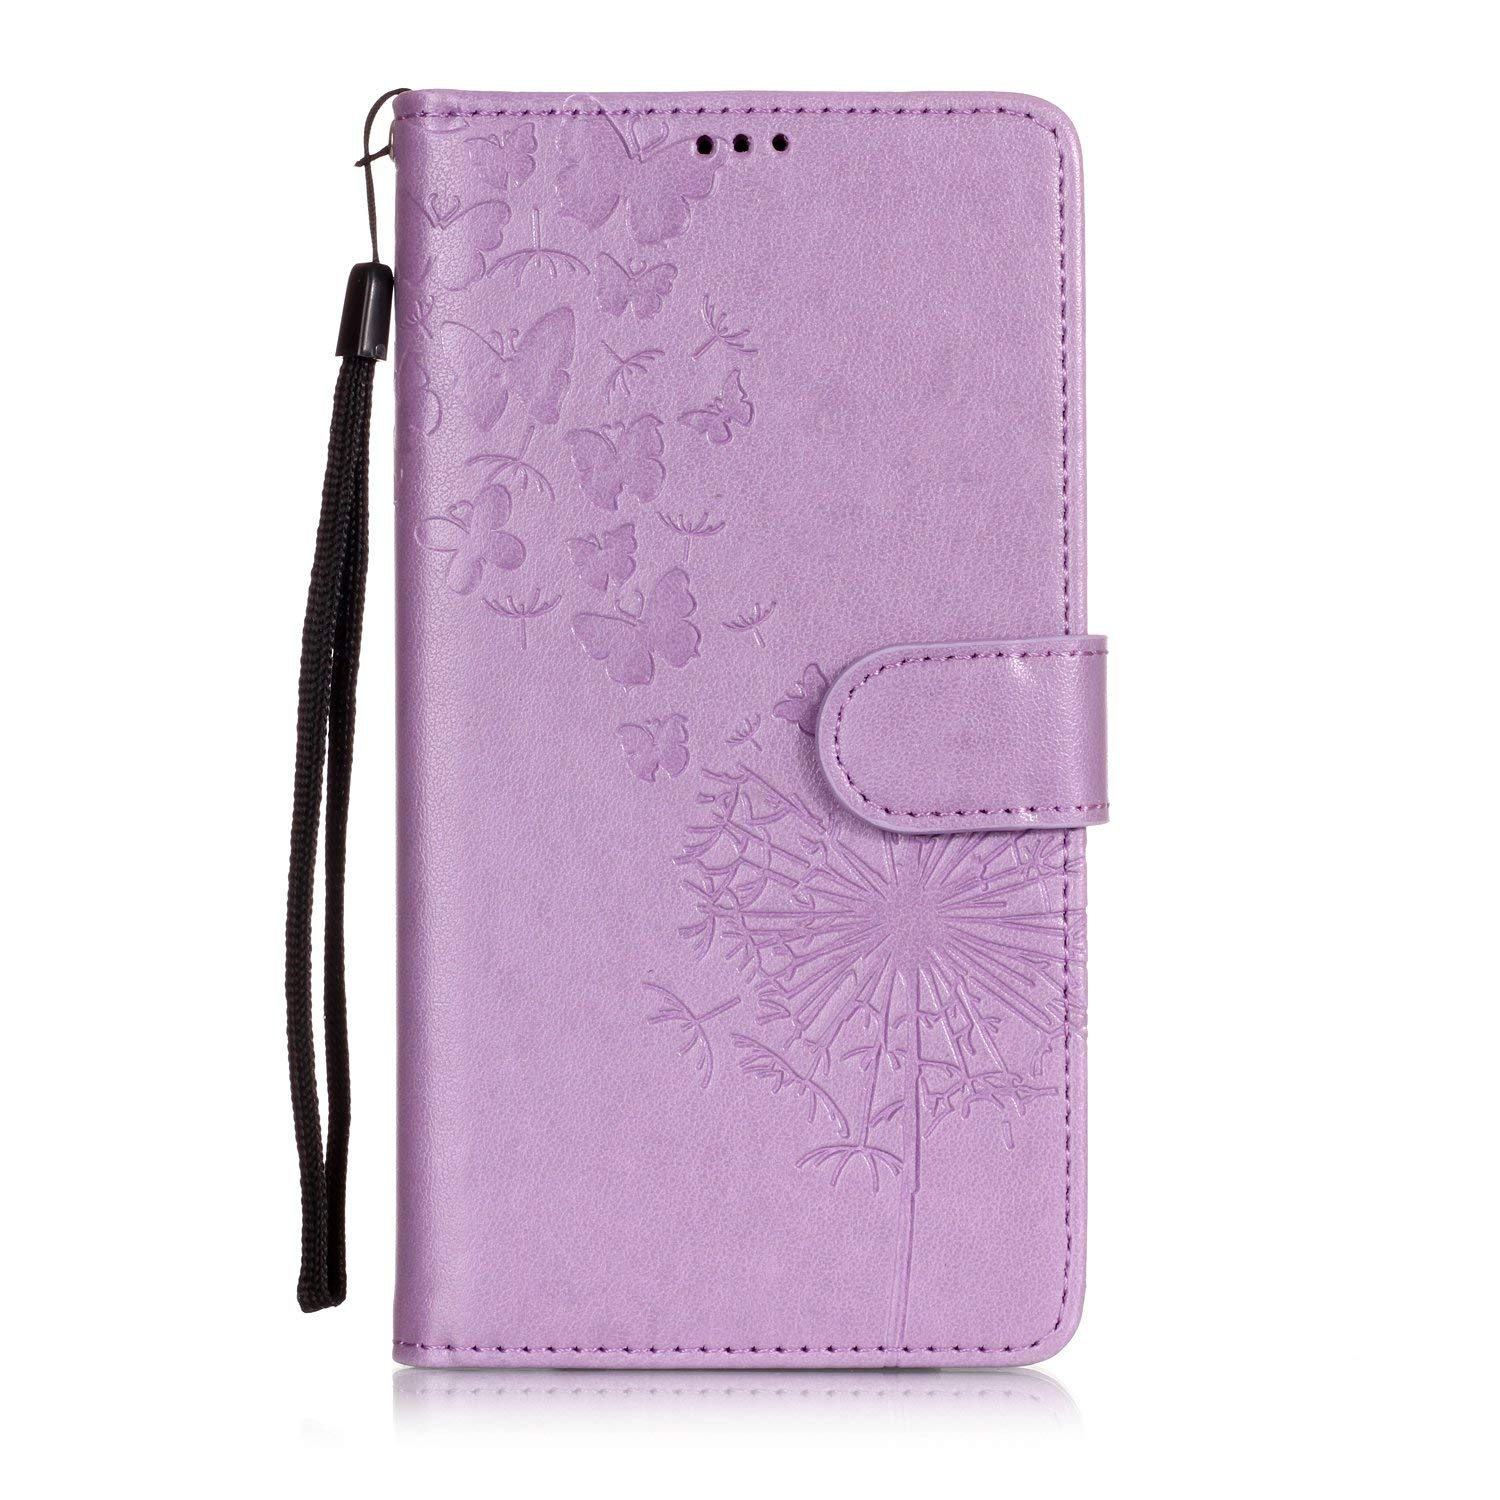 Shinyzone Protective Phone Case for LG G7,LG G7 ThinQ Case Embossed Butterfly Dandelion Pattern Series,Magnetic Stand Cover with Card Slots Leather Wallet Flip Case-Purple by Shinyzone (Image #2)